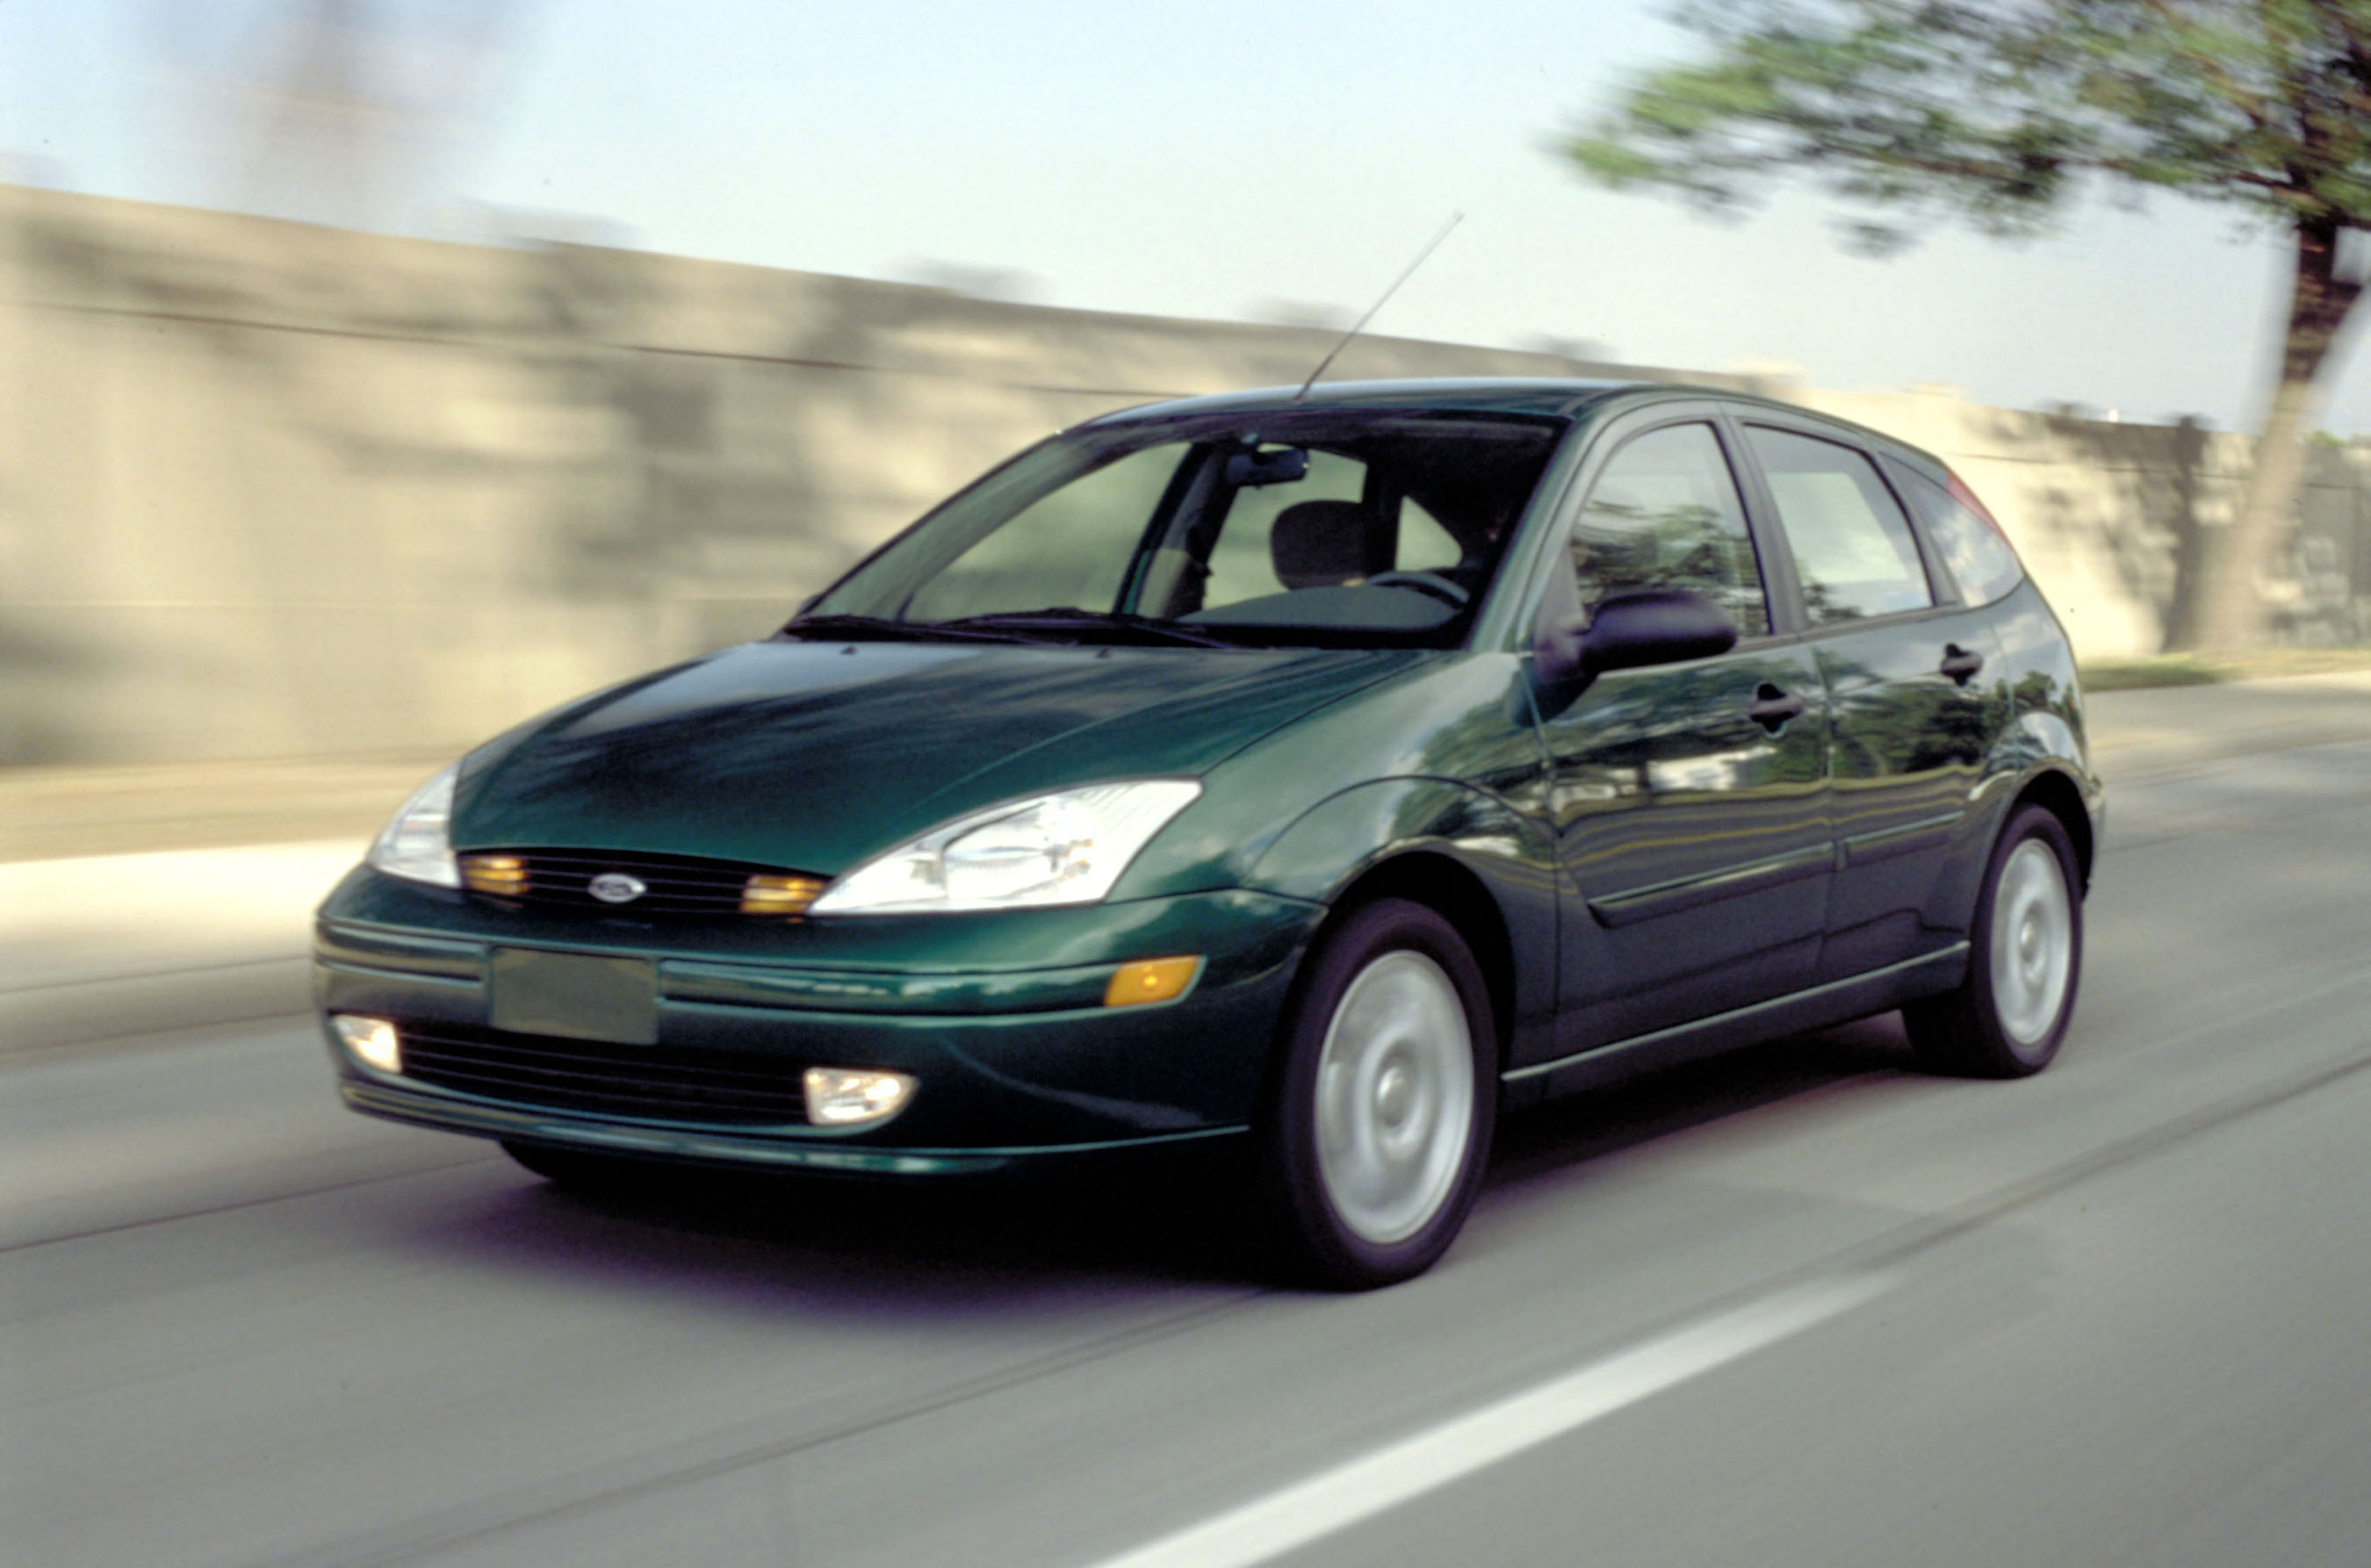 ford focus hatch 1999 wallpaper